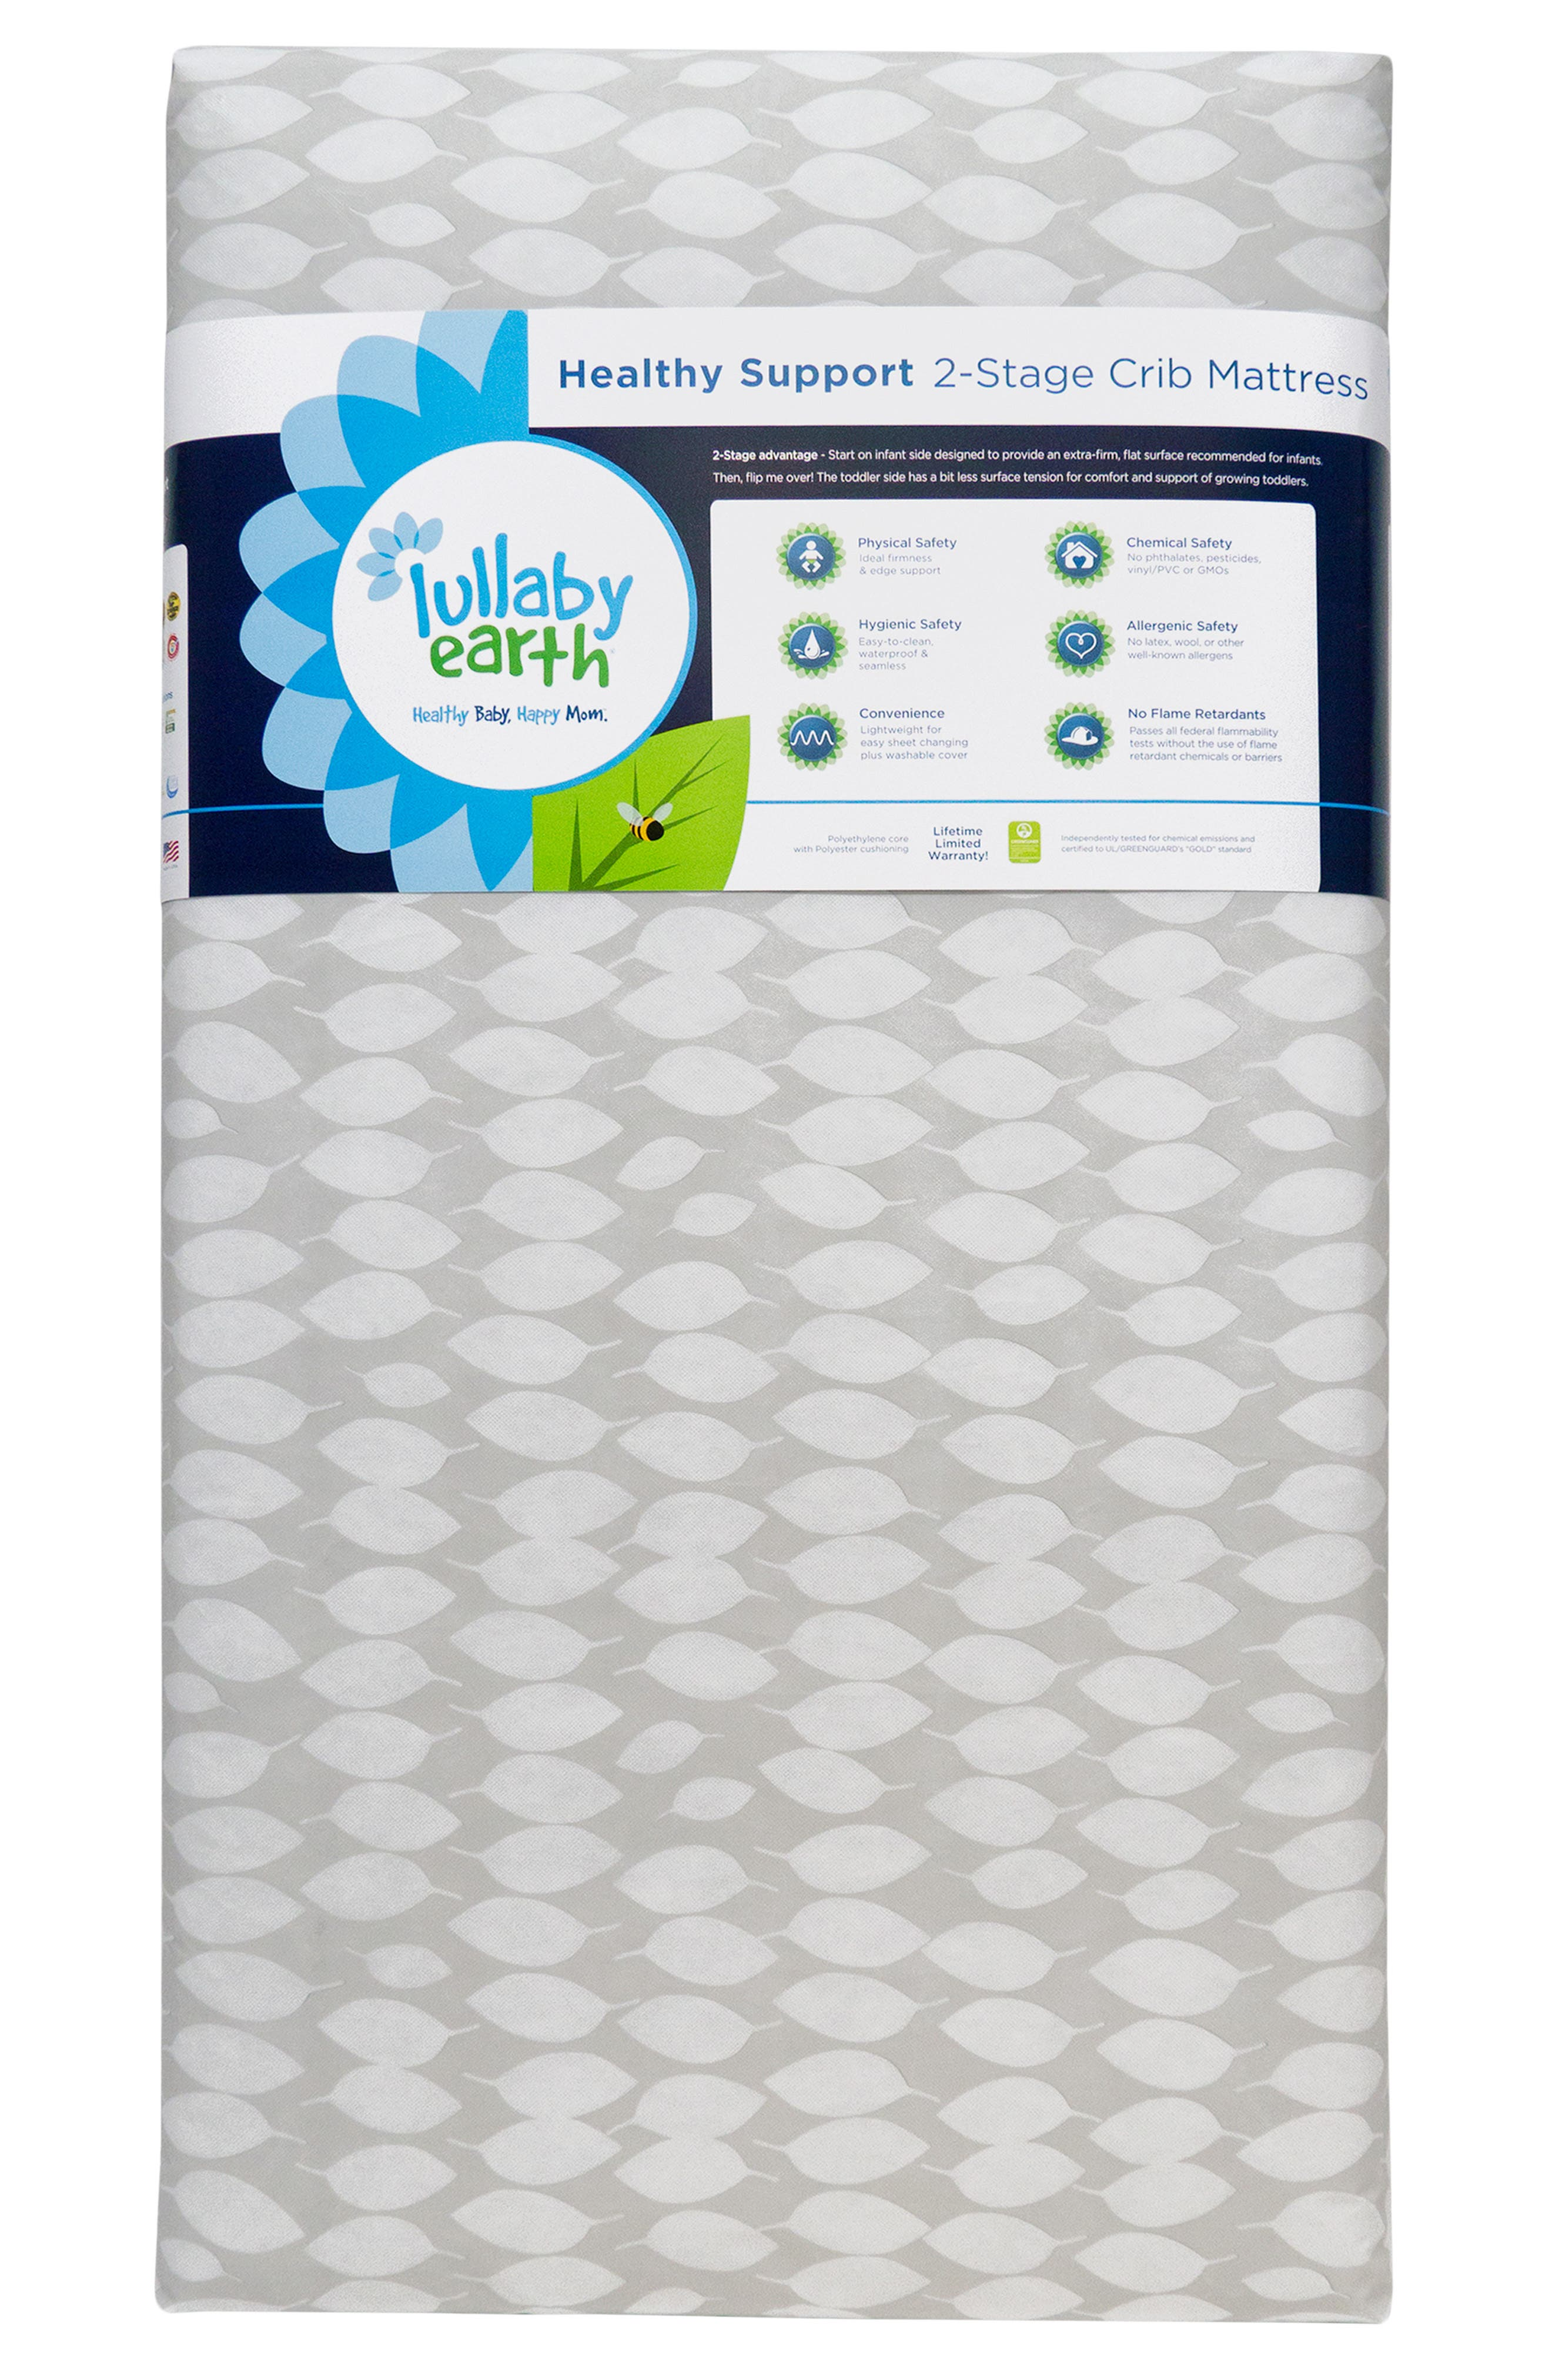 Healthy Support 2-Stage Crib Mattress,                         Main,                         color, 025